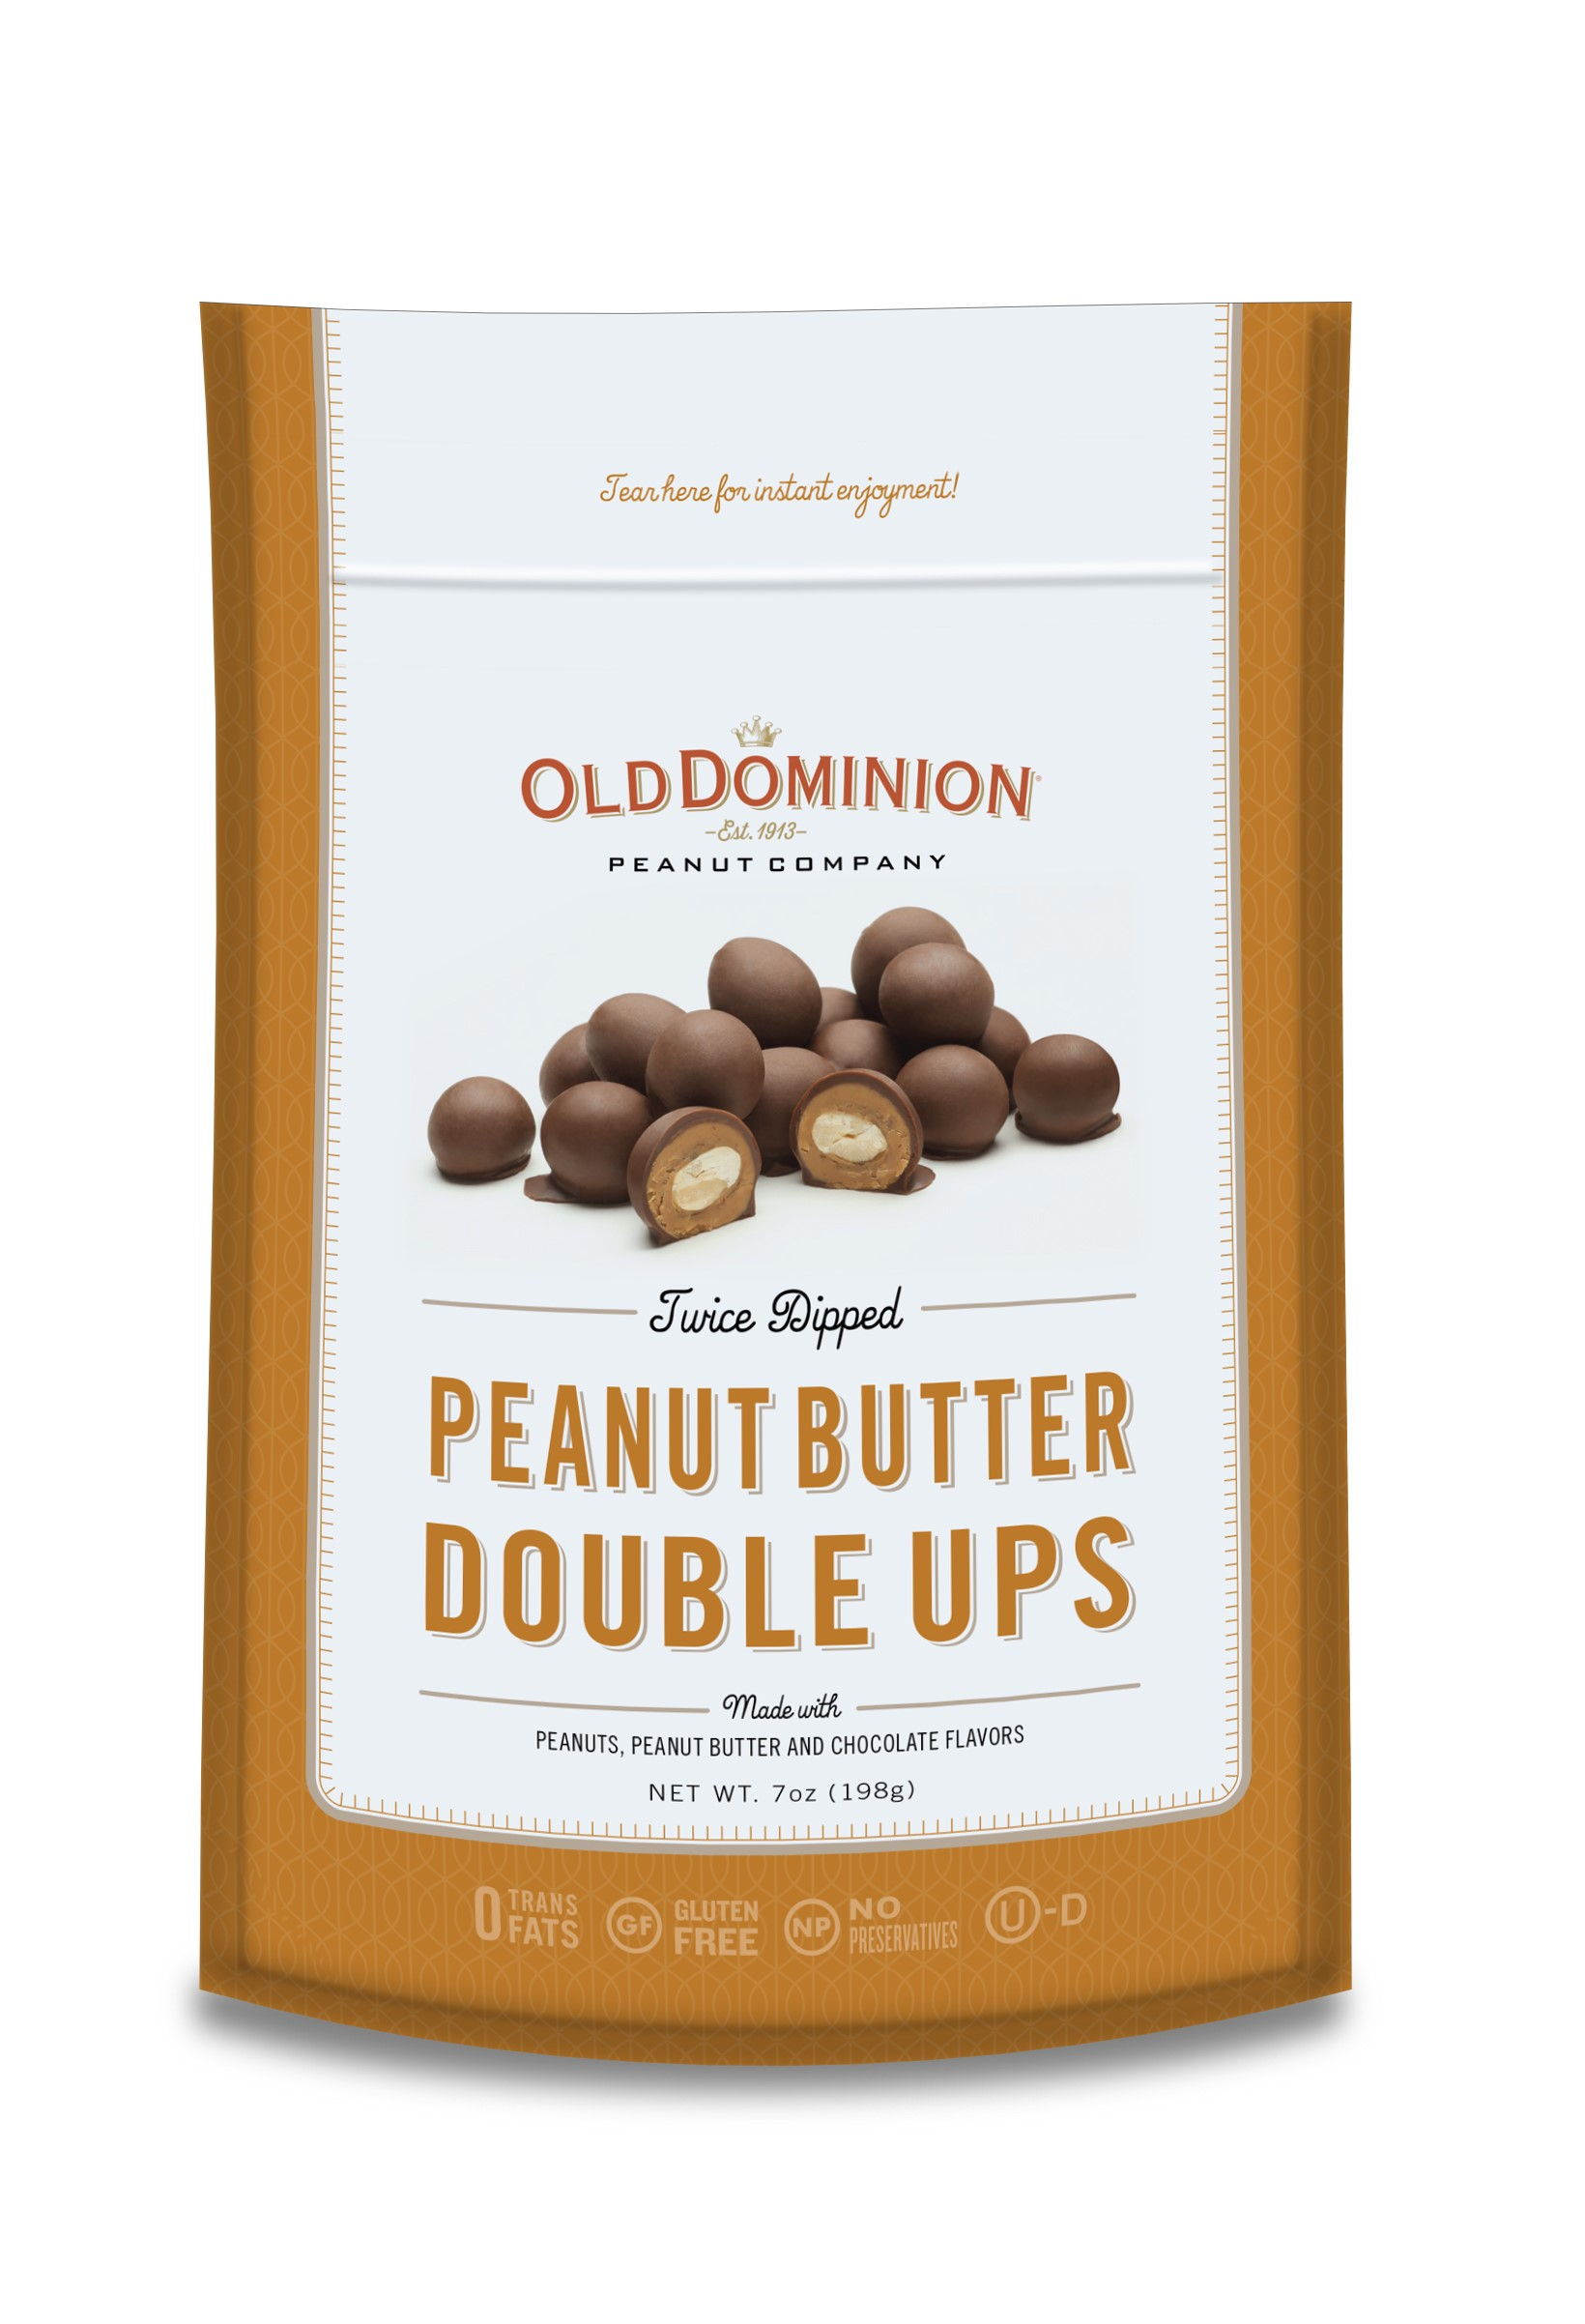 Peanut Butter Double Ups by Old Dominion Peanut Company